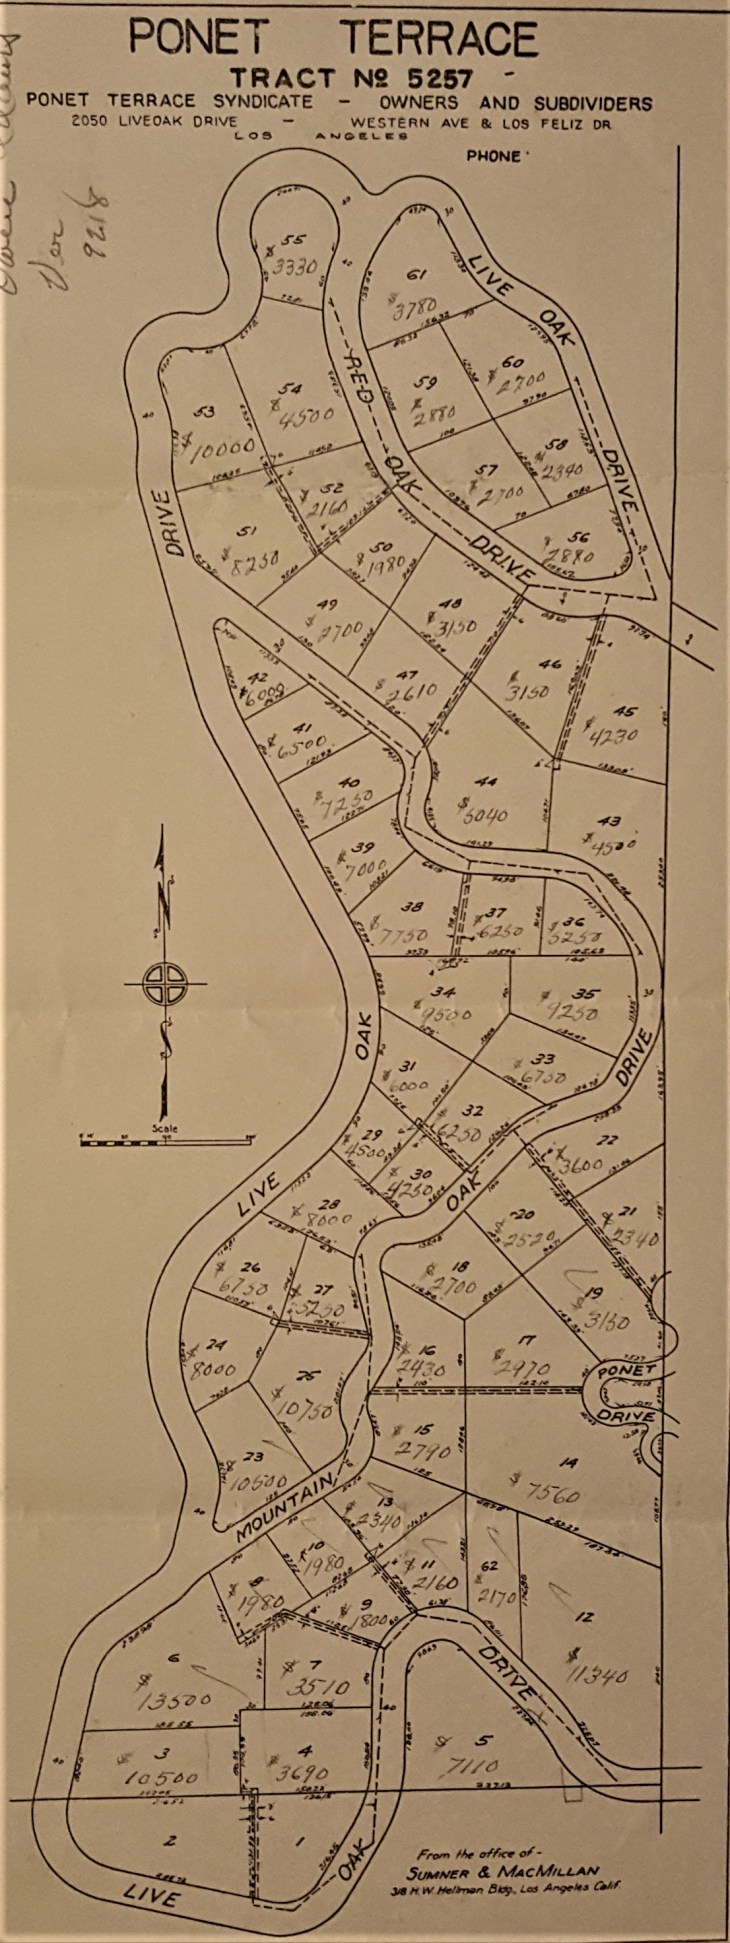 Ponet Terrace Tract Map 2